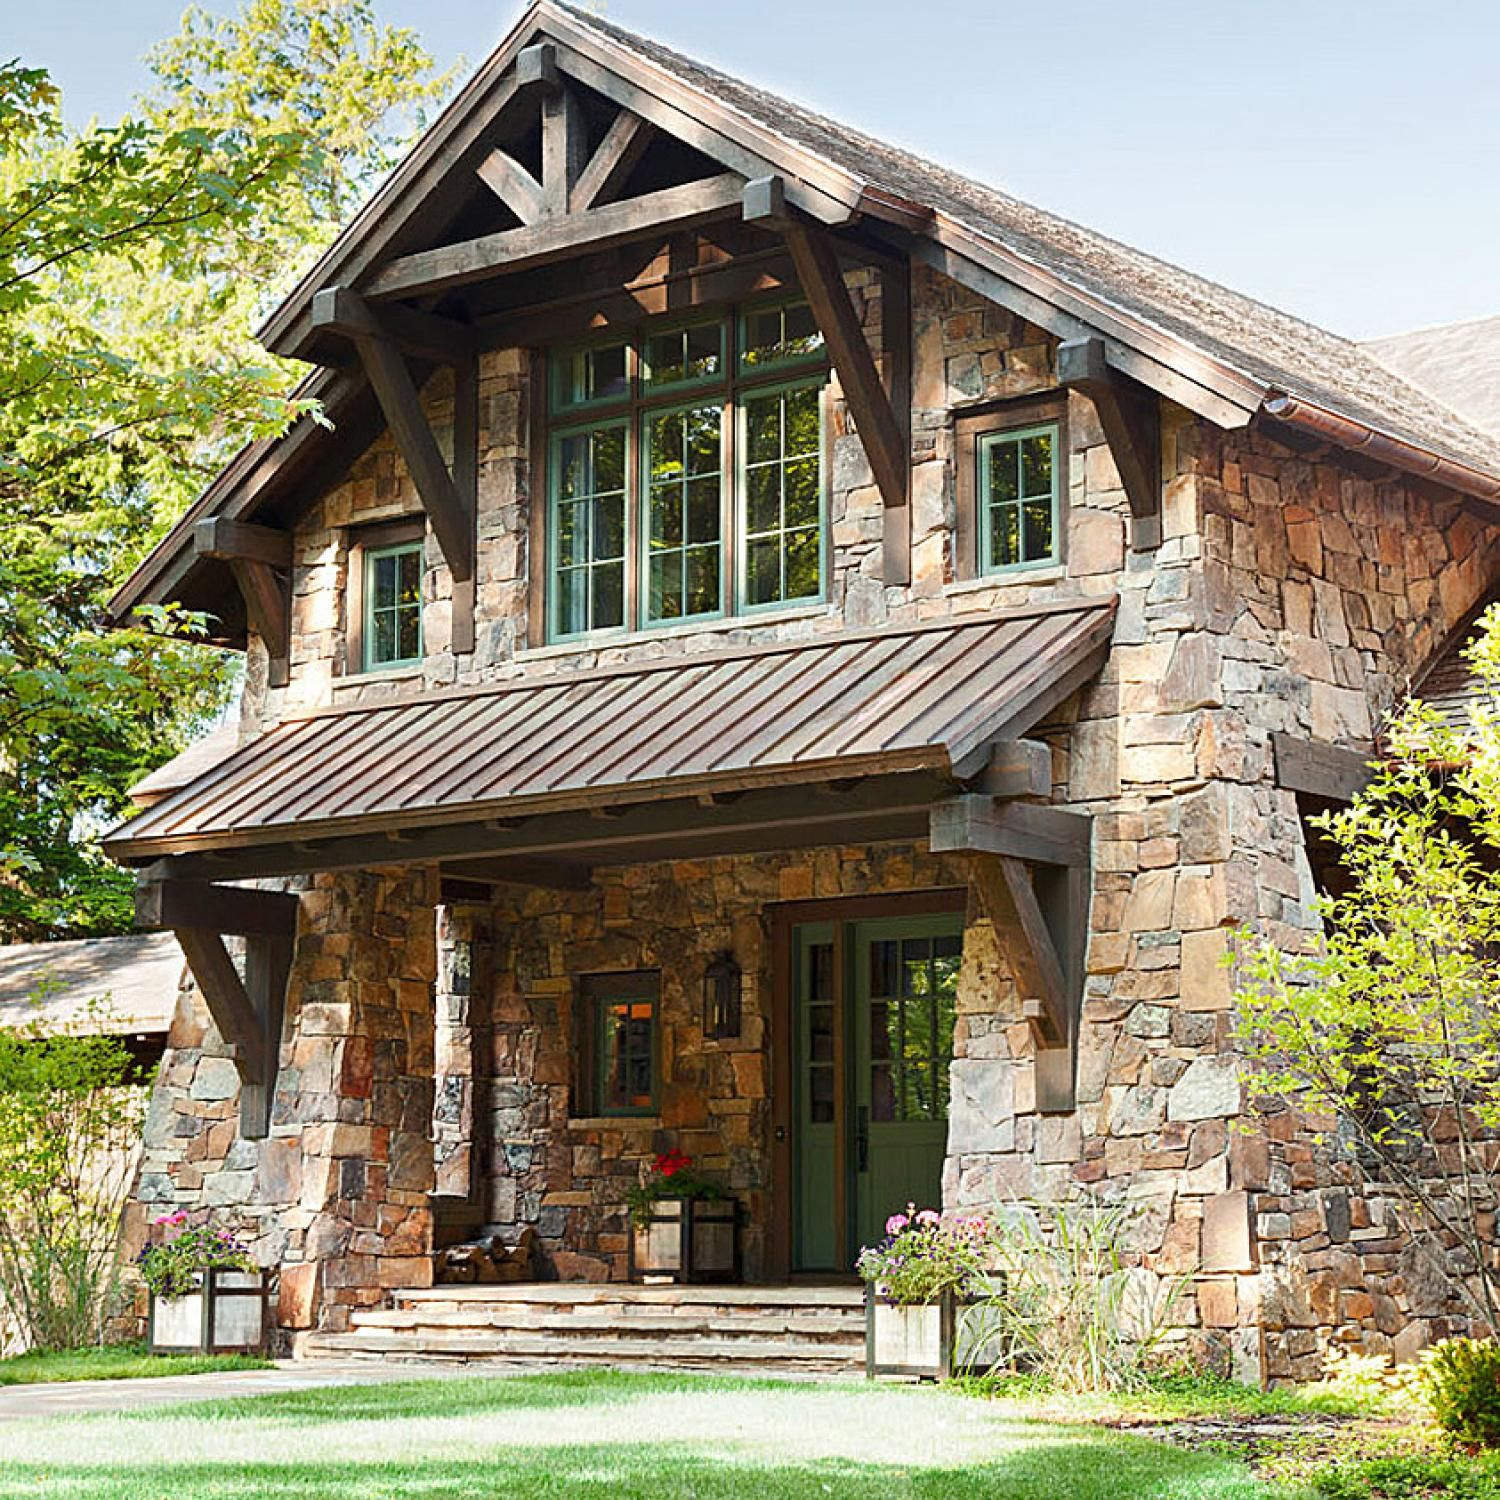 lovely stone and timber homes #6: A copper shed roof shields the front porch of the stone-and-timber house